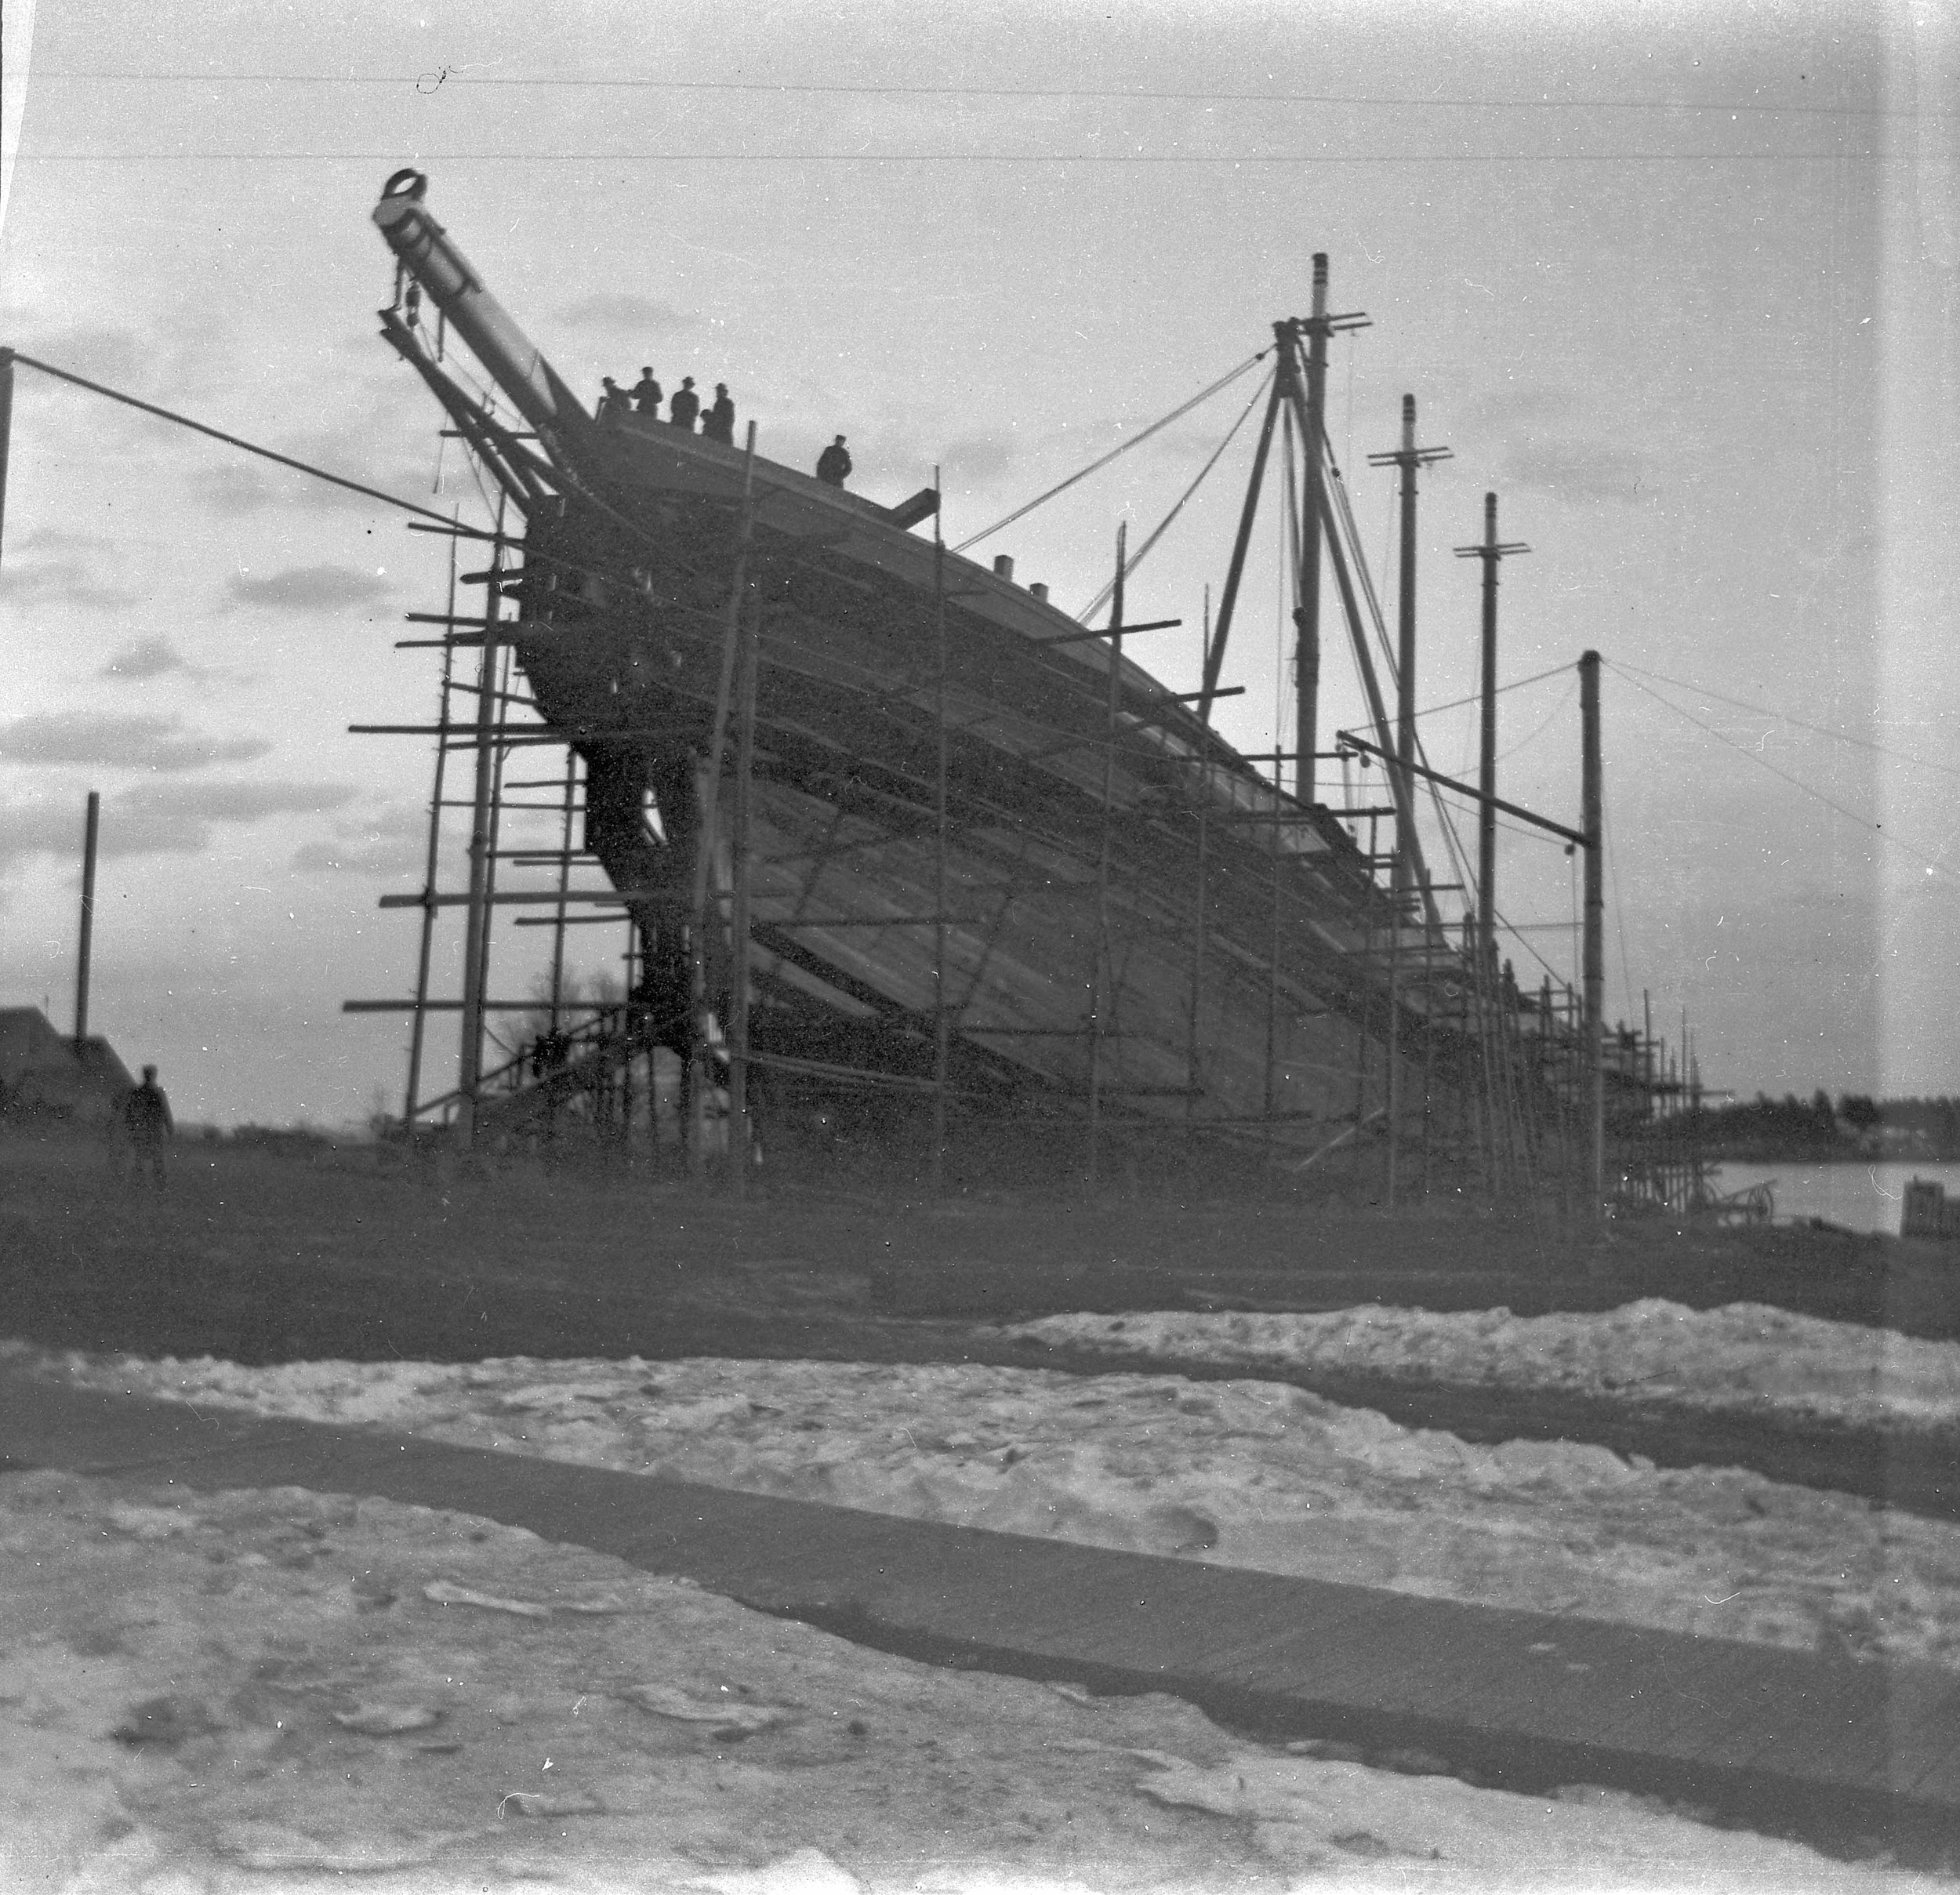 Construction of the 5-masted schooner John B. Prescott in 1898. The largest schooner in the world at that time, she was built to carry 4300 tons of coal. More than 10,000 people turned out for the launching at the Bean shipyard in Camden. The vessel was 282 feet long, weighing 2249 tons with masts 168 feet tall. The vessel was sheathed in iron to protect it from the ice. Photo courtesy of Camden Public Library